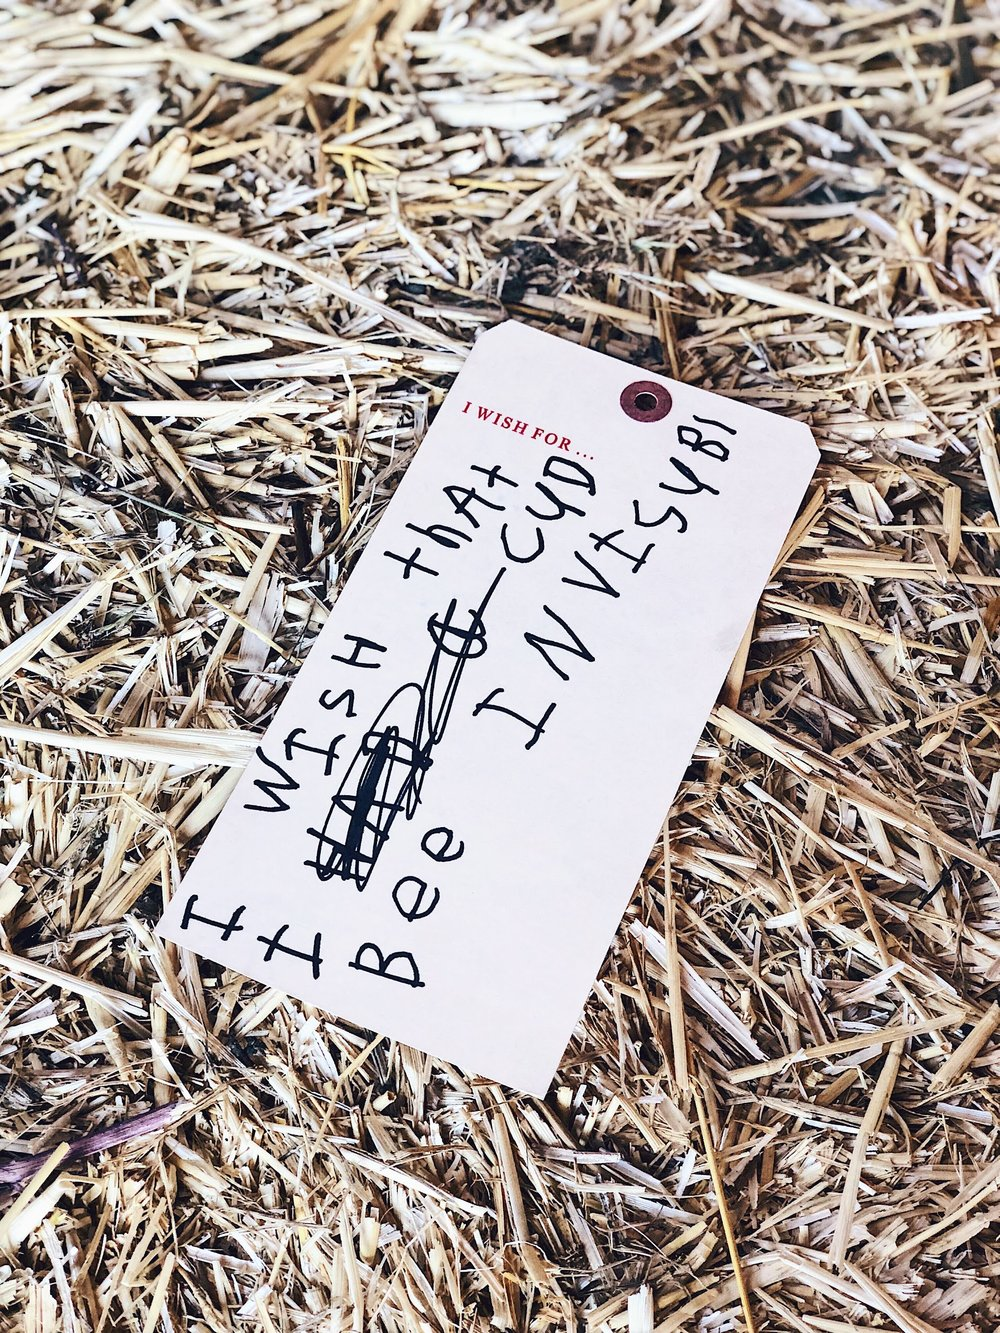 Wishes For Belden Barns Wishing Tree